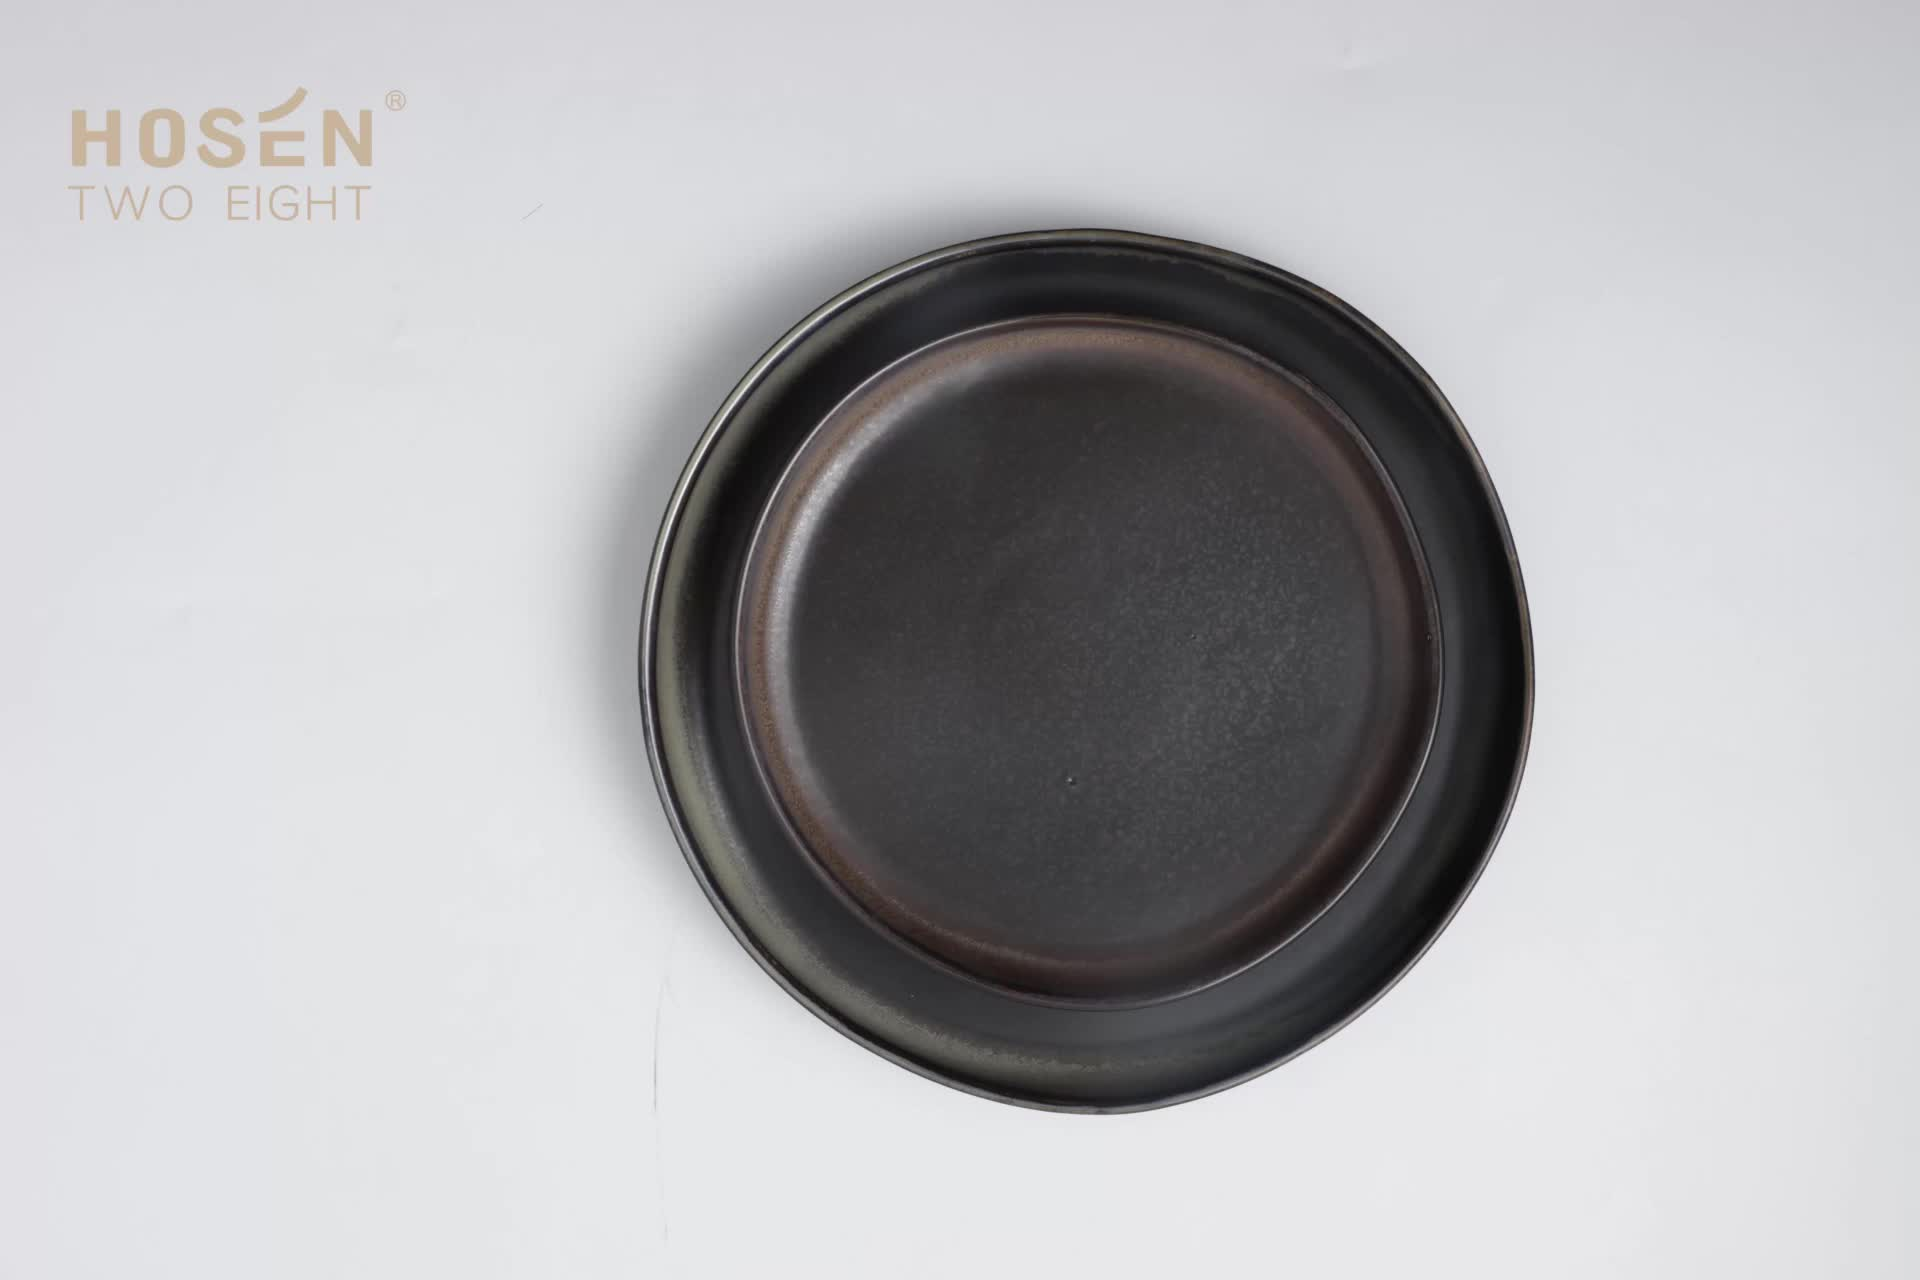 Chaozhou Manufacturer New Trend Ceramic Porcelain Dinner Chargers Plate Sets